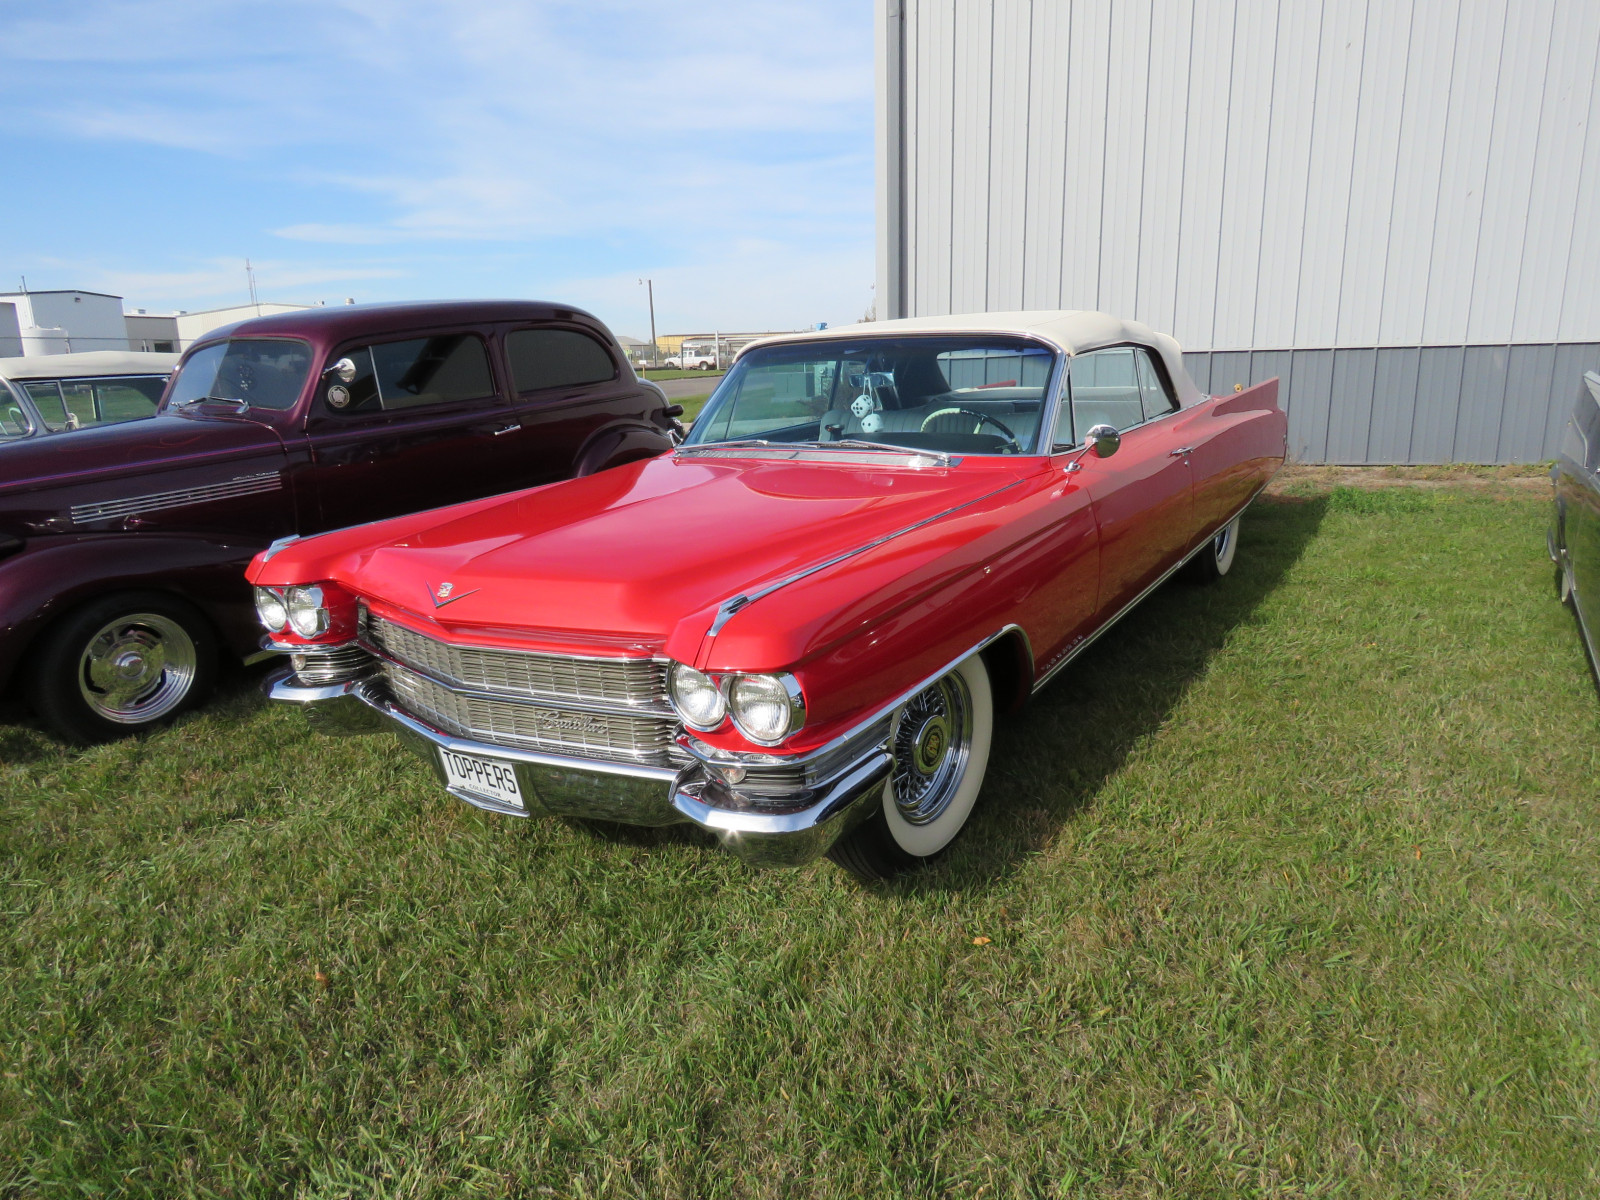 Beautiful 1963 Cadillac Eldorado Convertible - Image 3